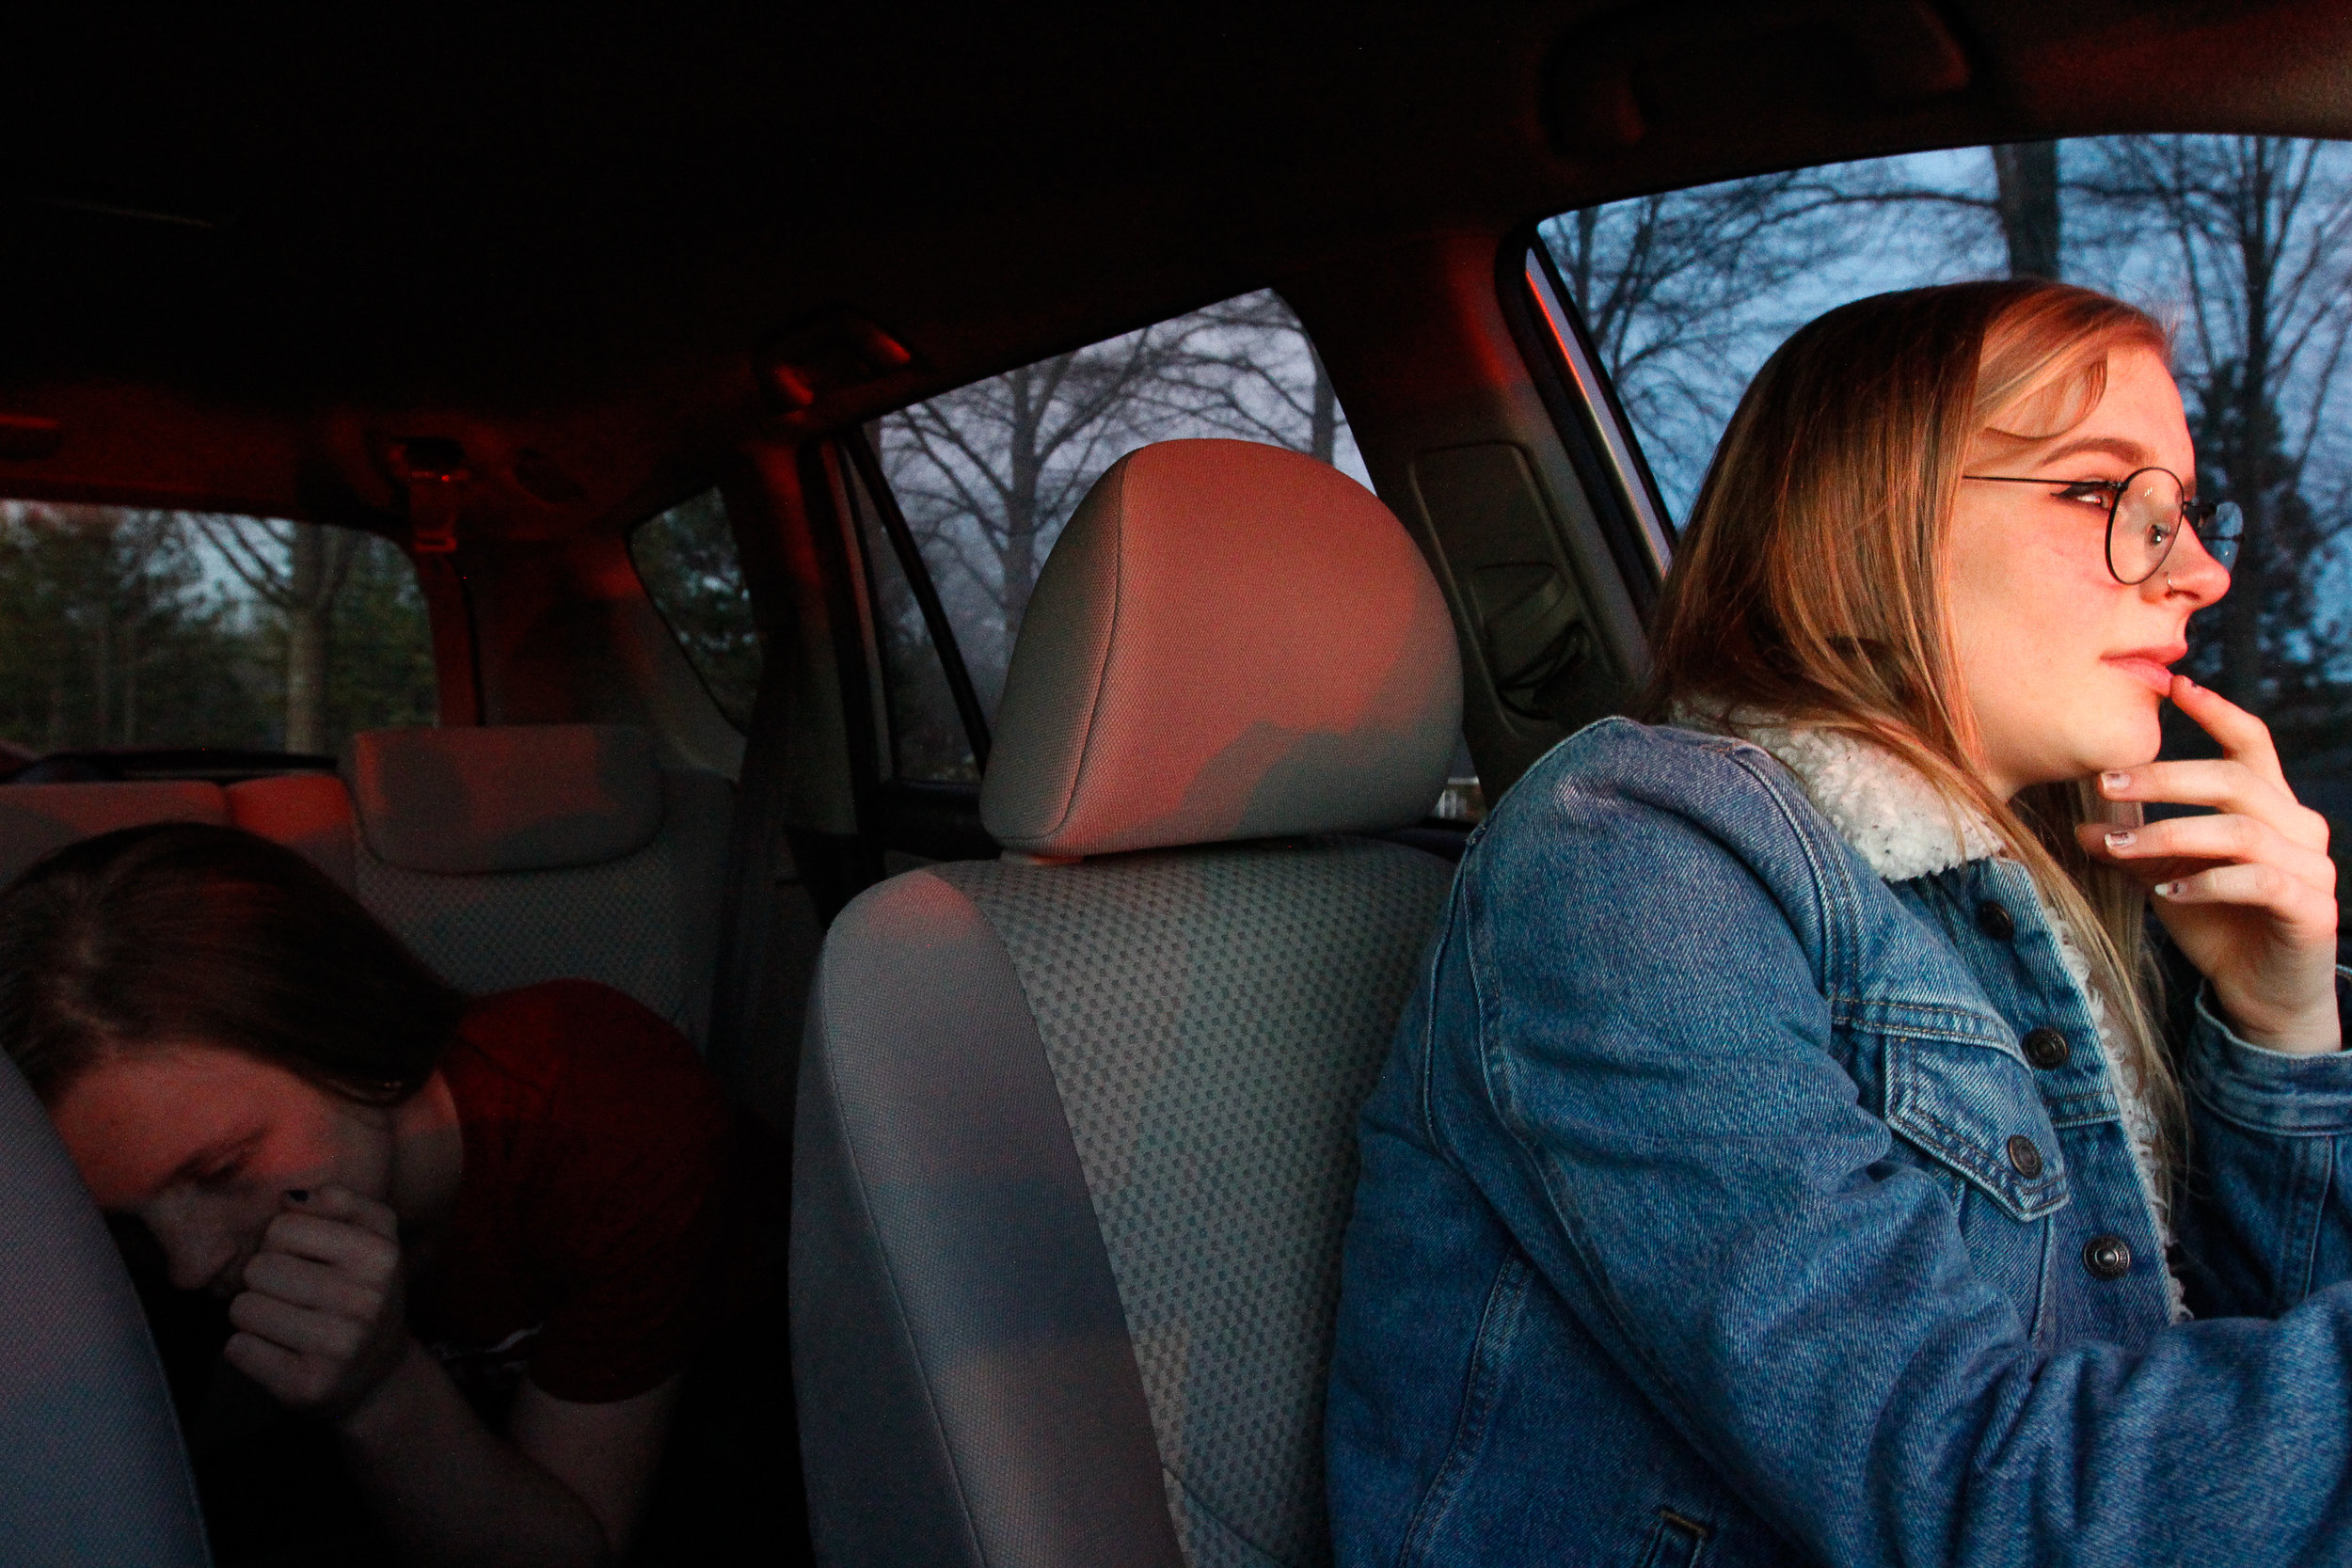 Ashlynn Brown and her sister, Izzy, drive home in silence from the grocery store on Sunday, Feb. 19, 2017.